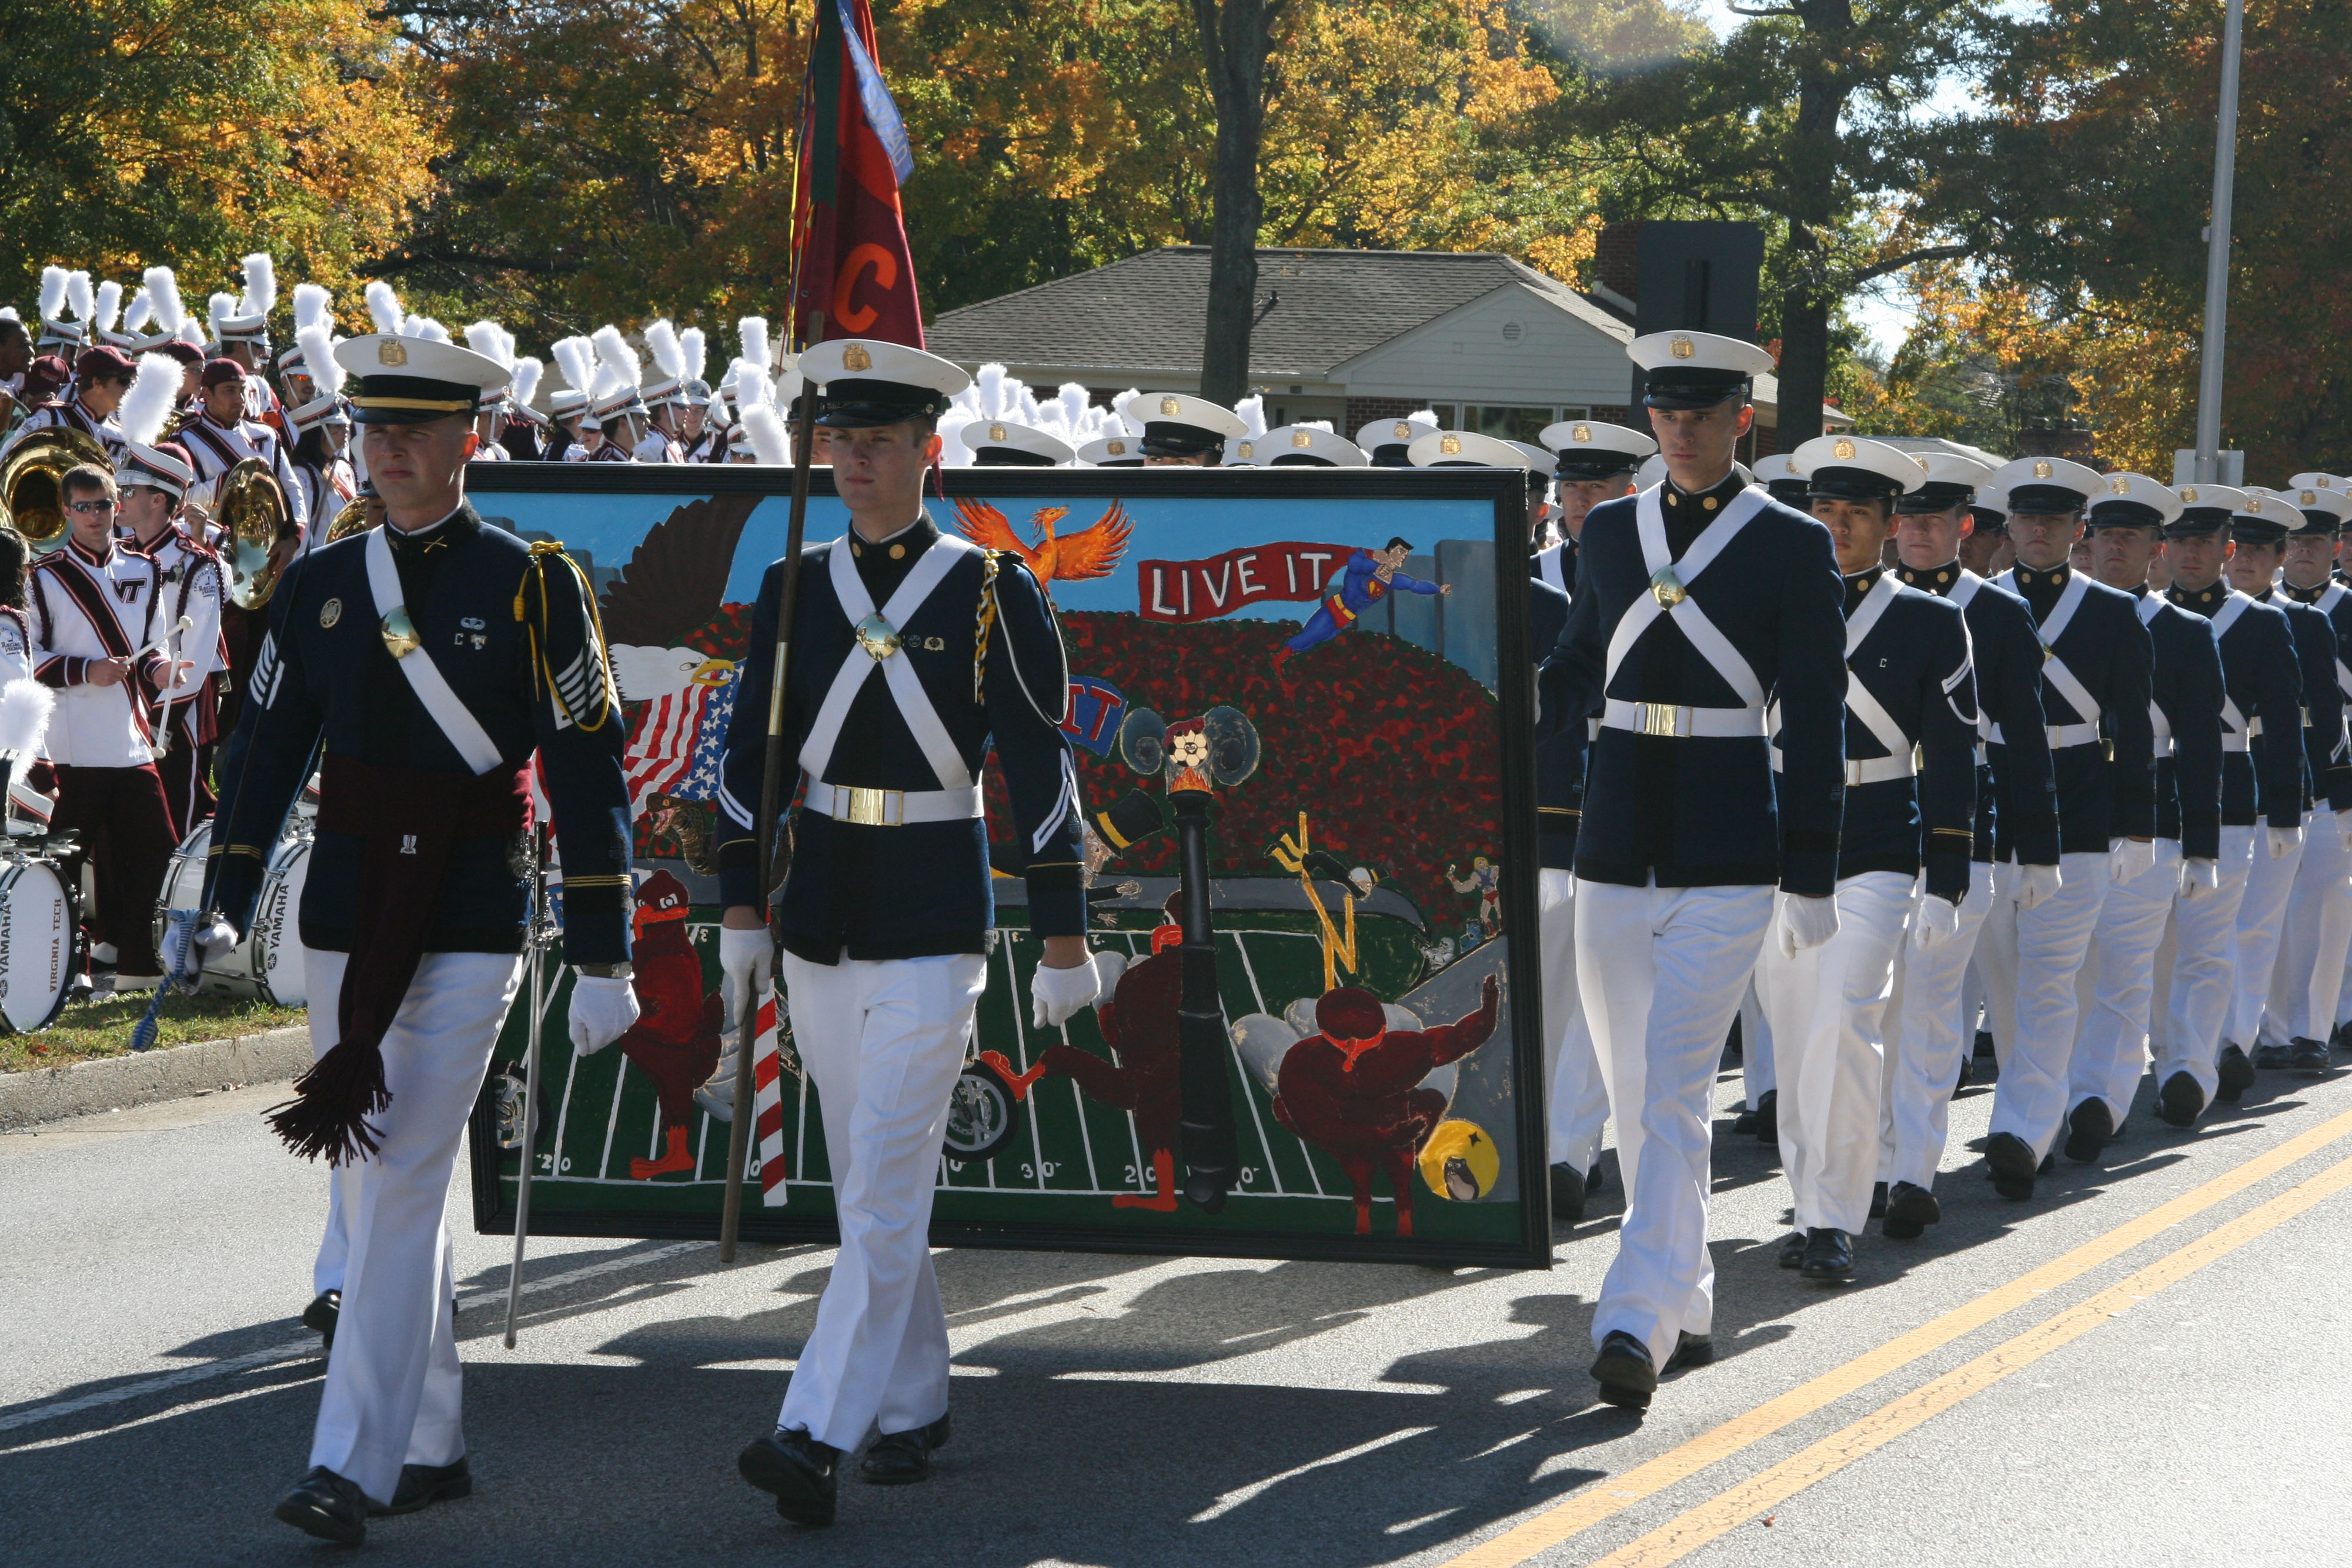 Members of the Virginia Tech Corps of Cadets march during the 2010 Homecoming Parade carrying their unit homecoming banner